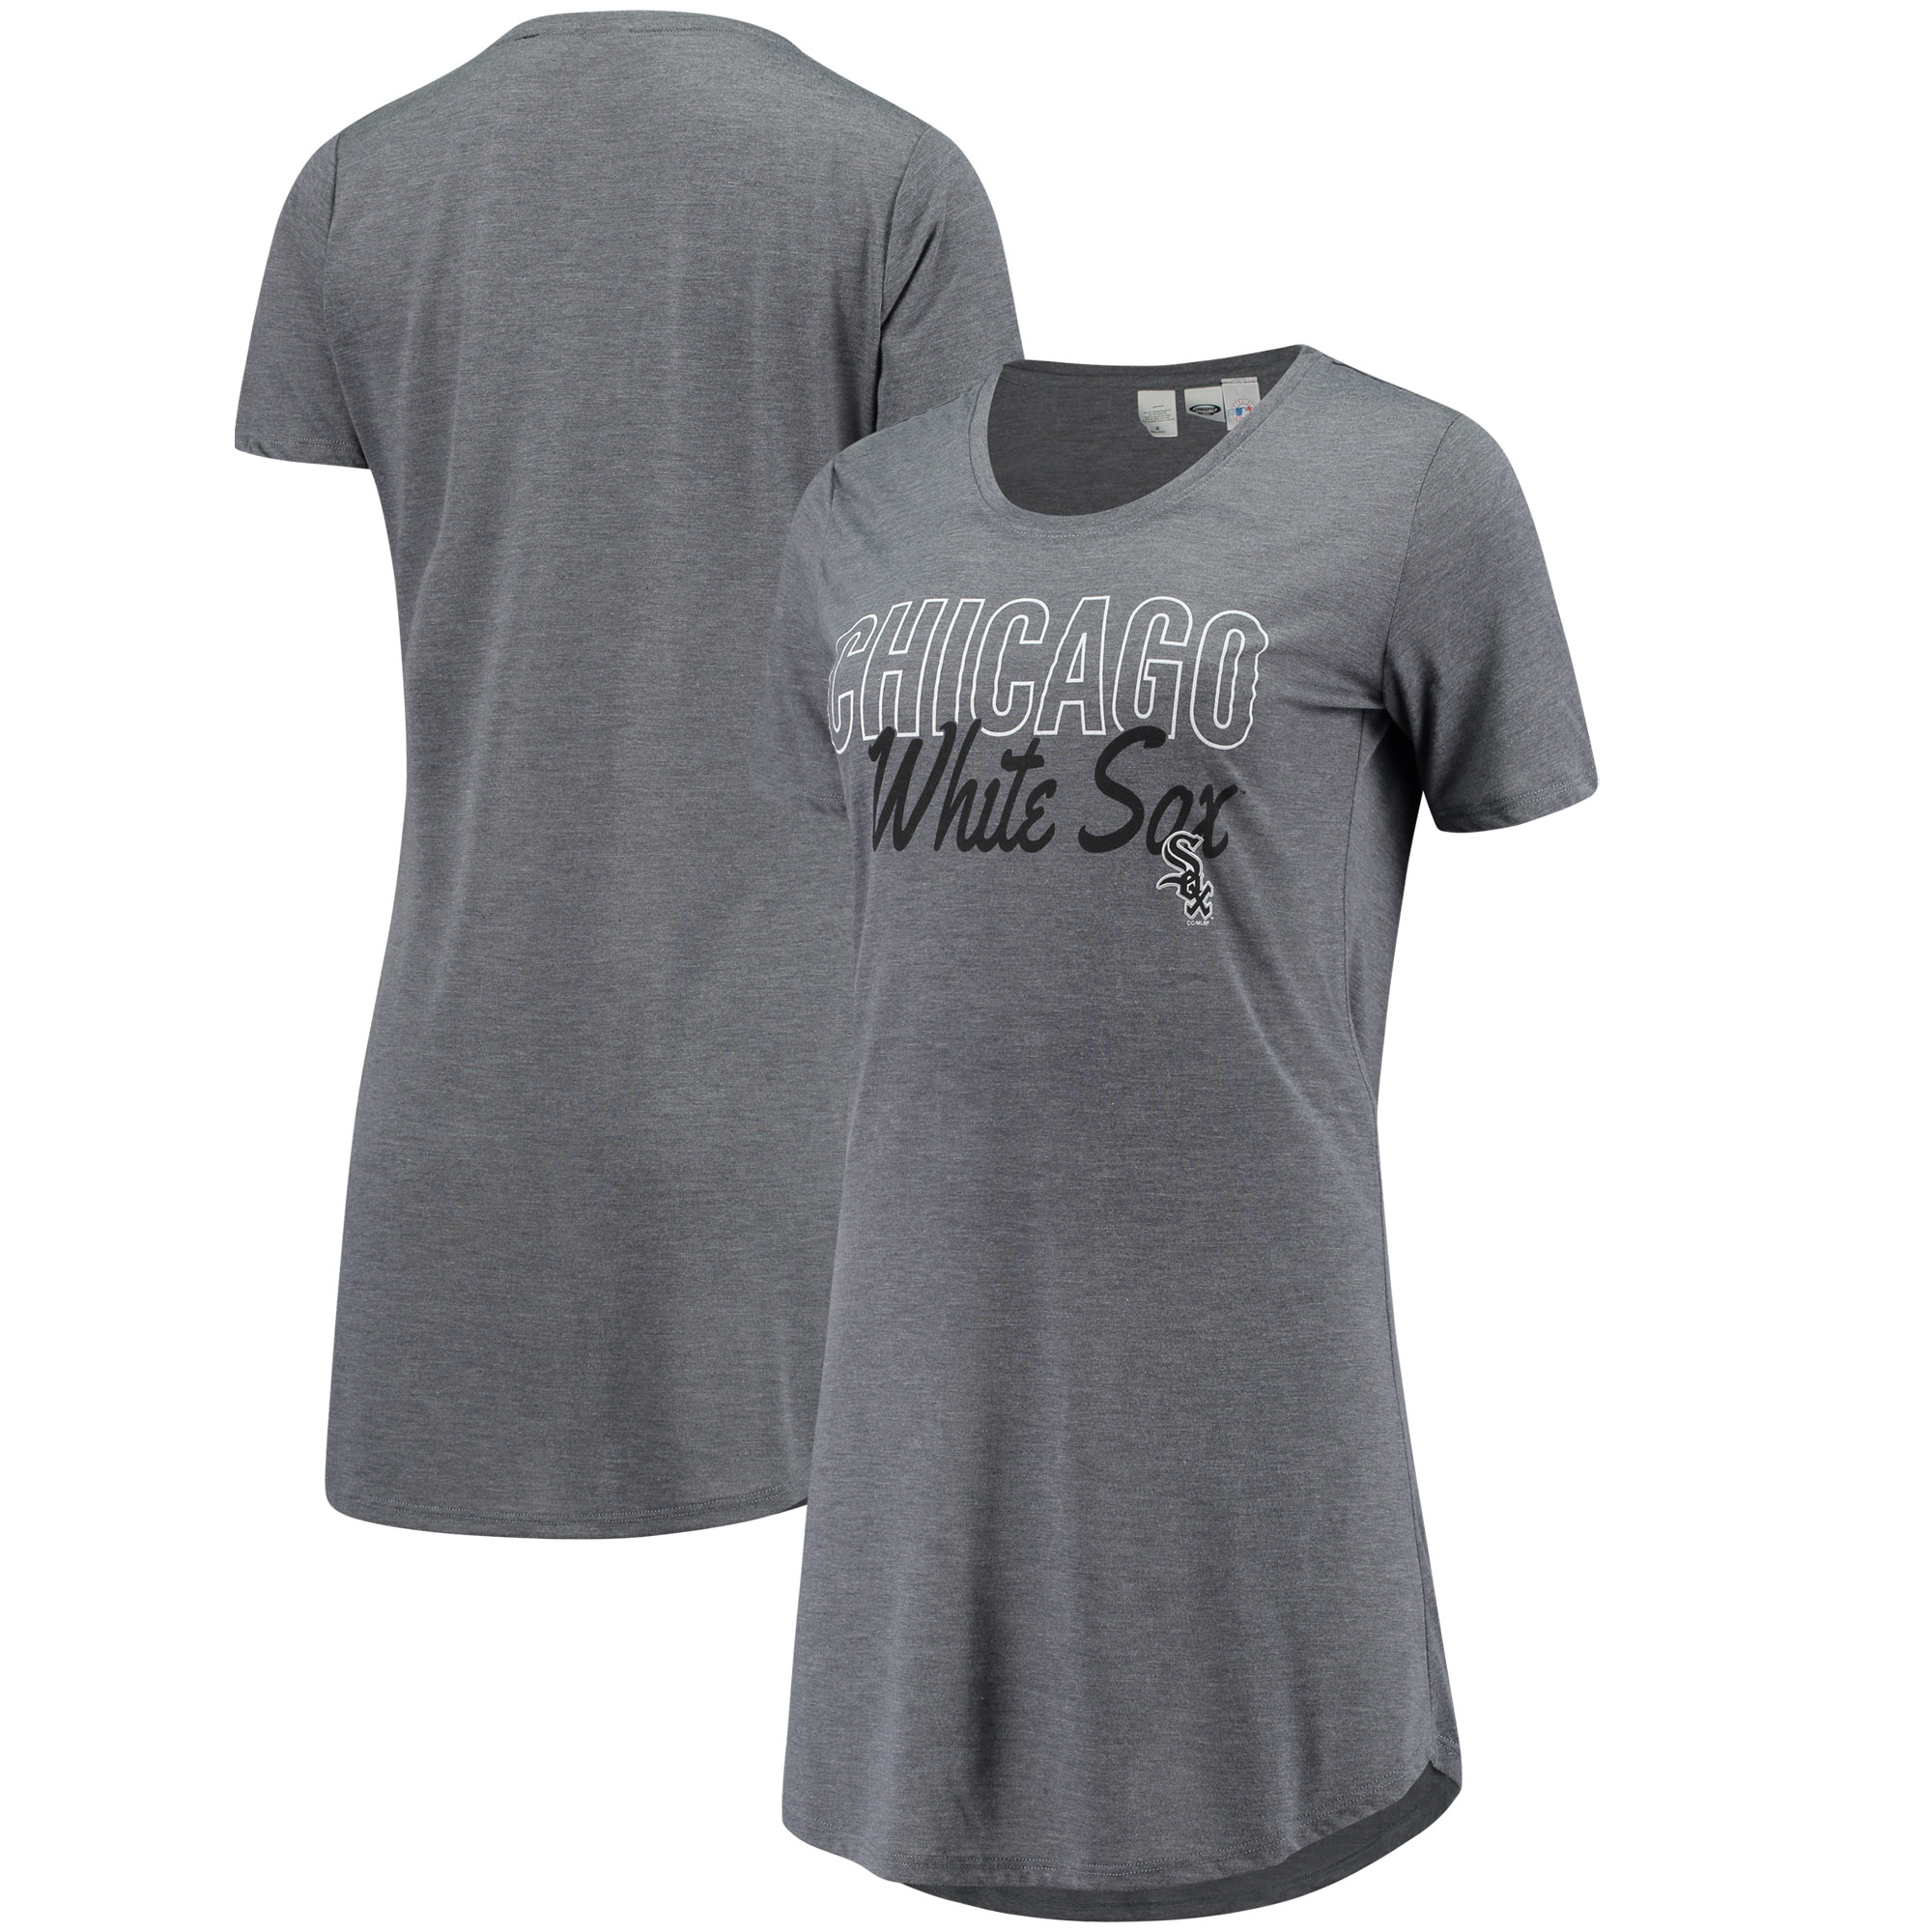 Chicago White Sox Concepts Sport Women's Knit Nightshirt - Charcoal